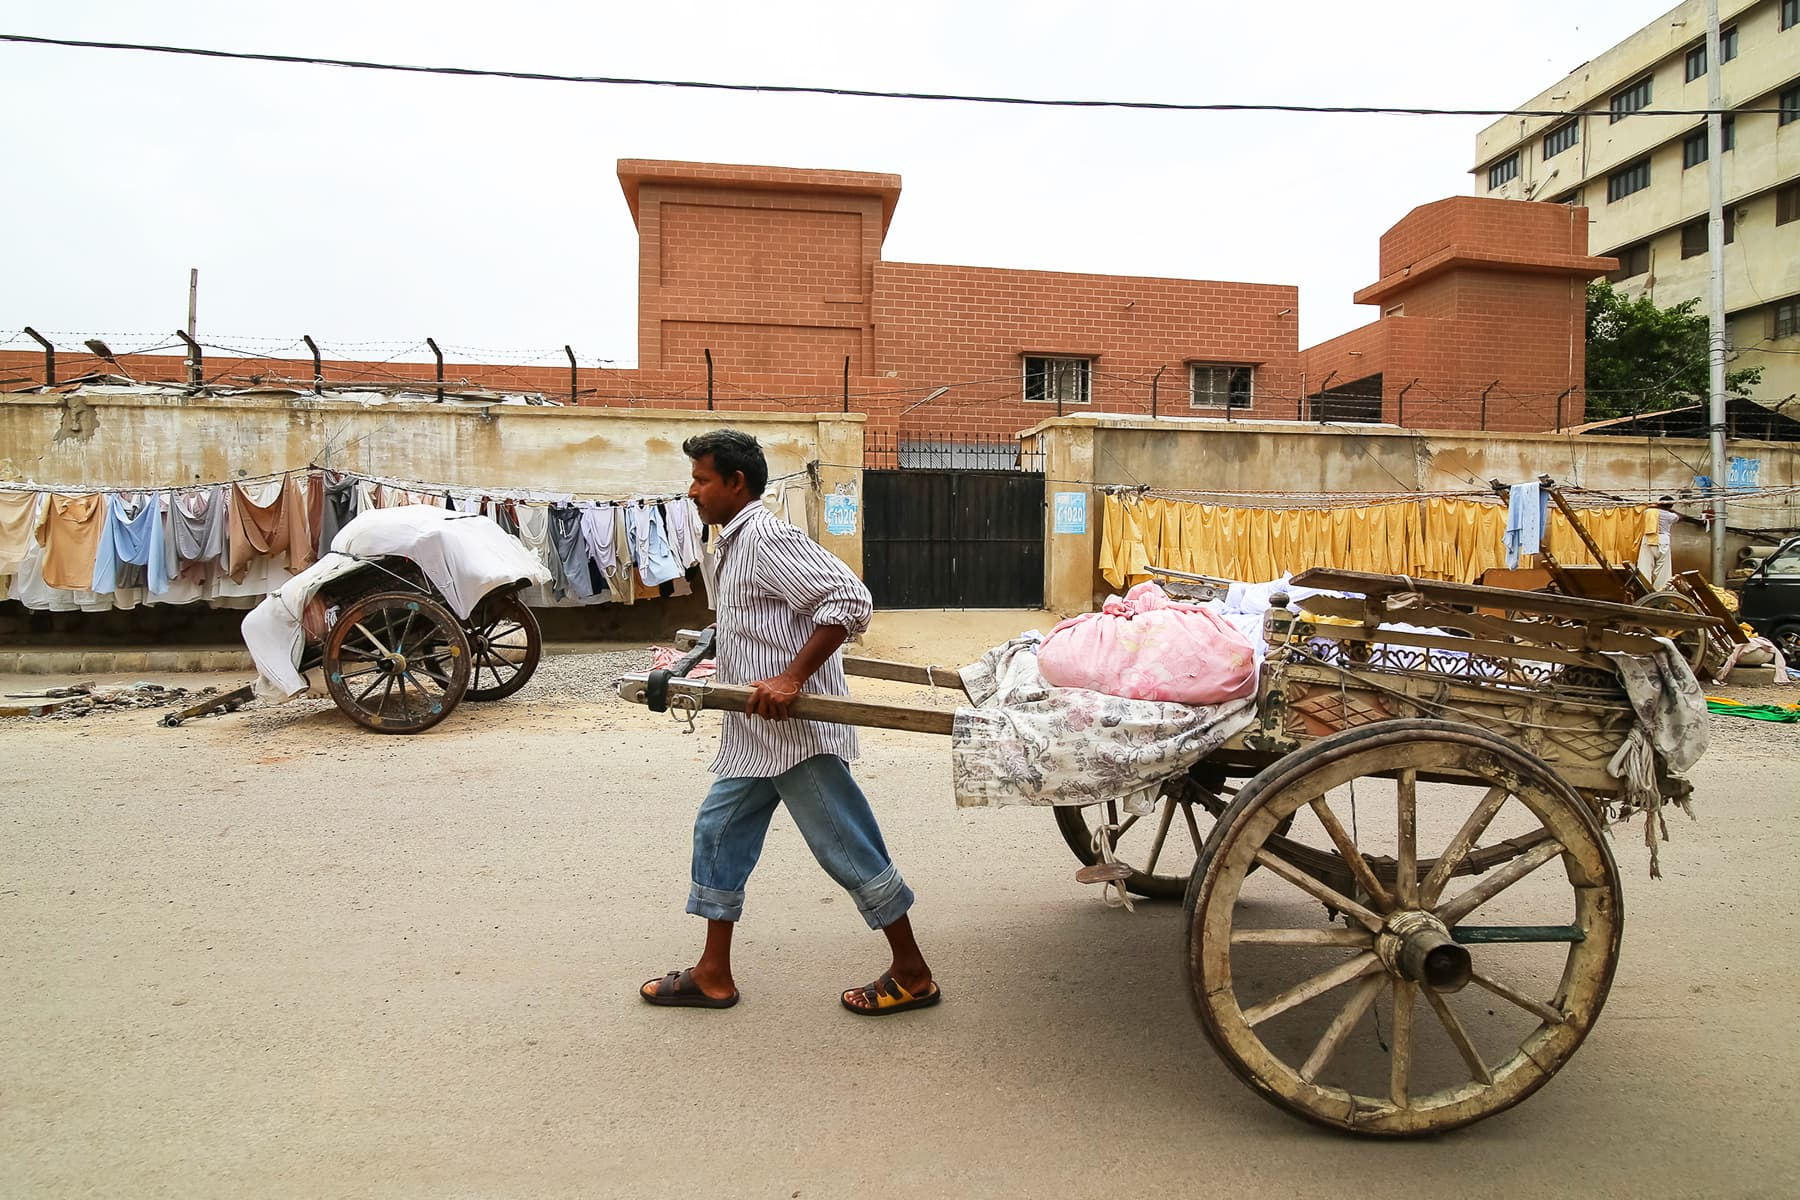 Raja, Faheem's brother pulls a cart with freshly laundered clothes.